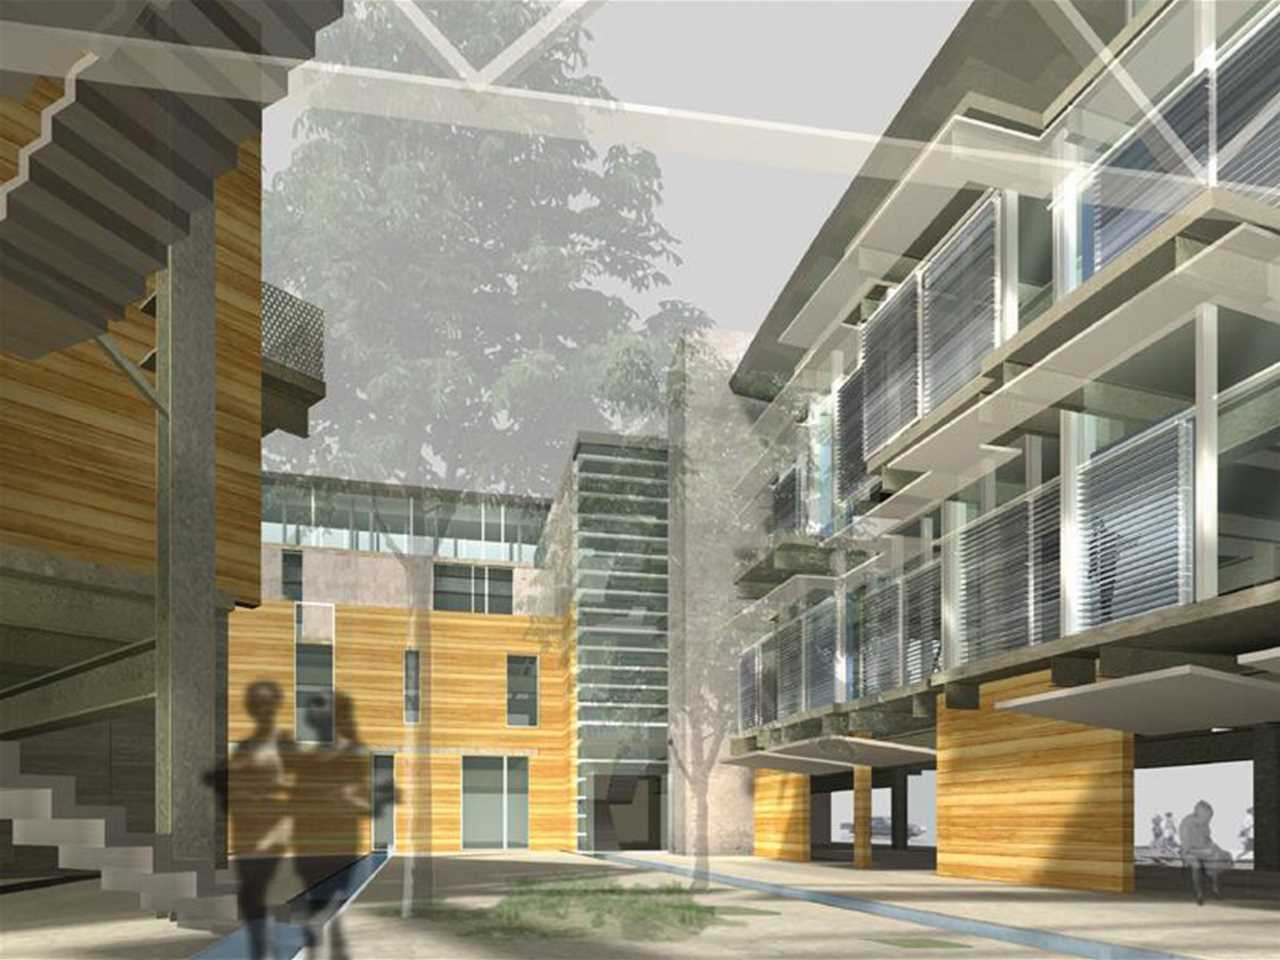 Holcim Awards Encouragement prize 2005 North America: Big Dig Building, Boston, Massachusetts, USA